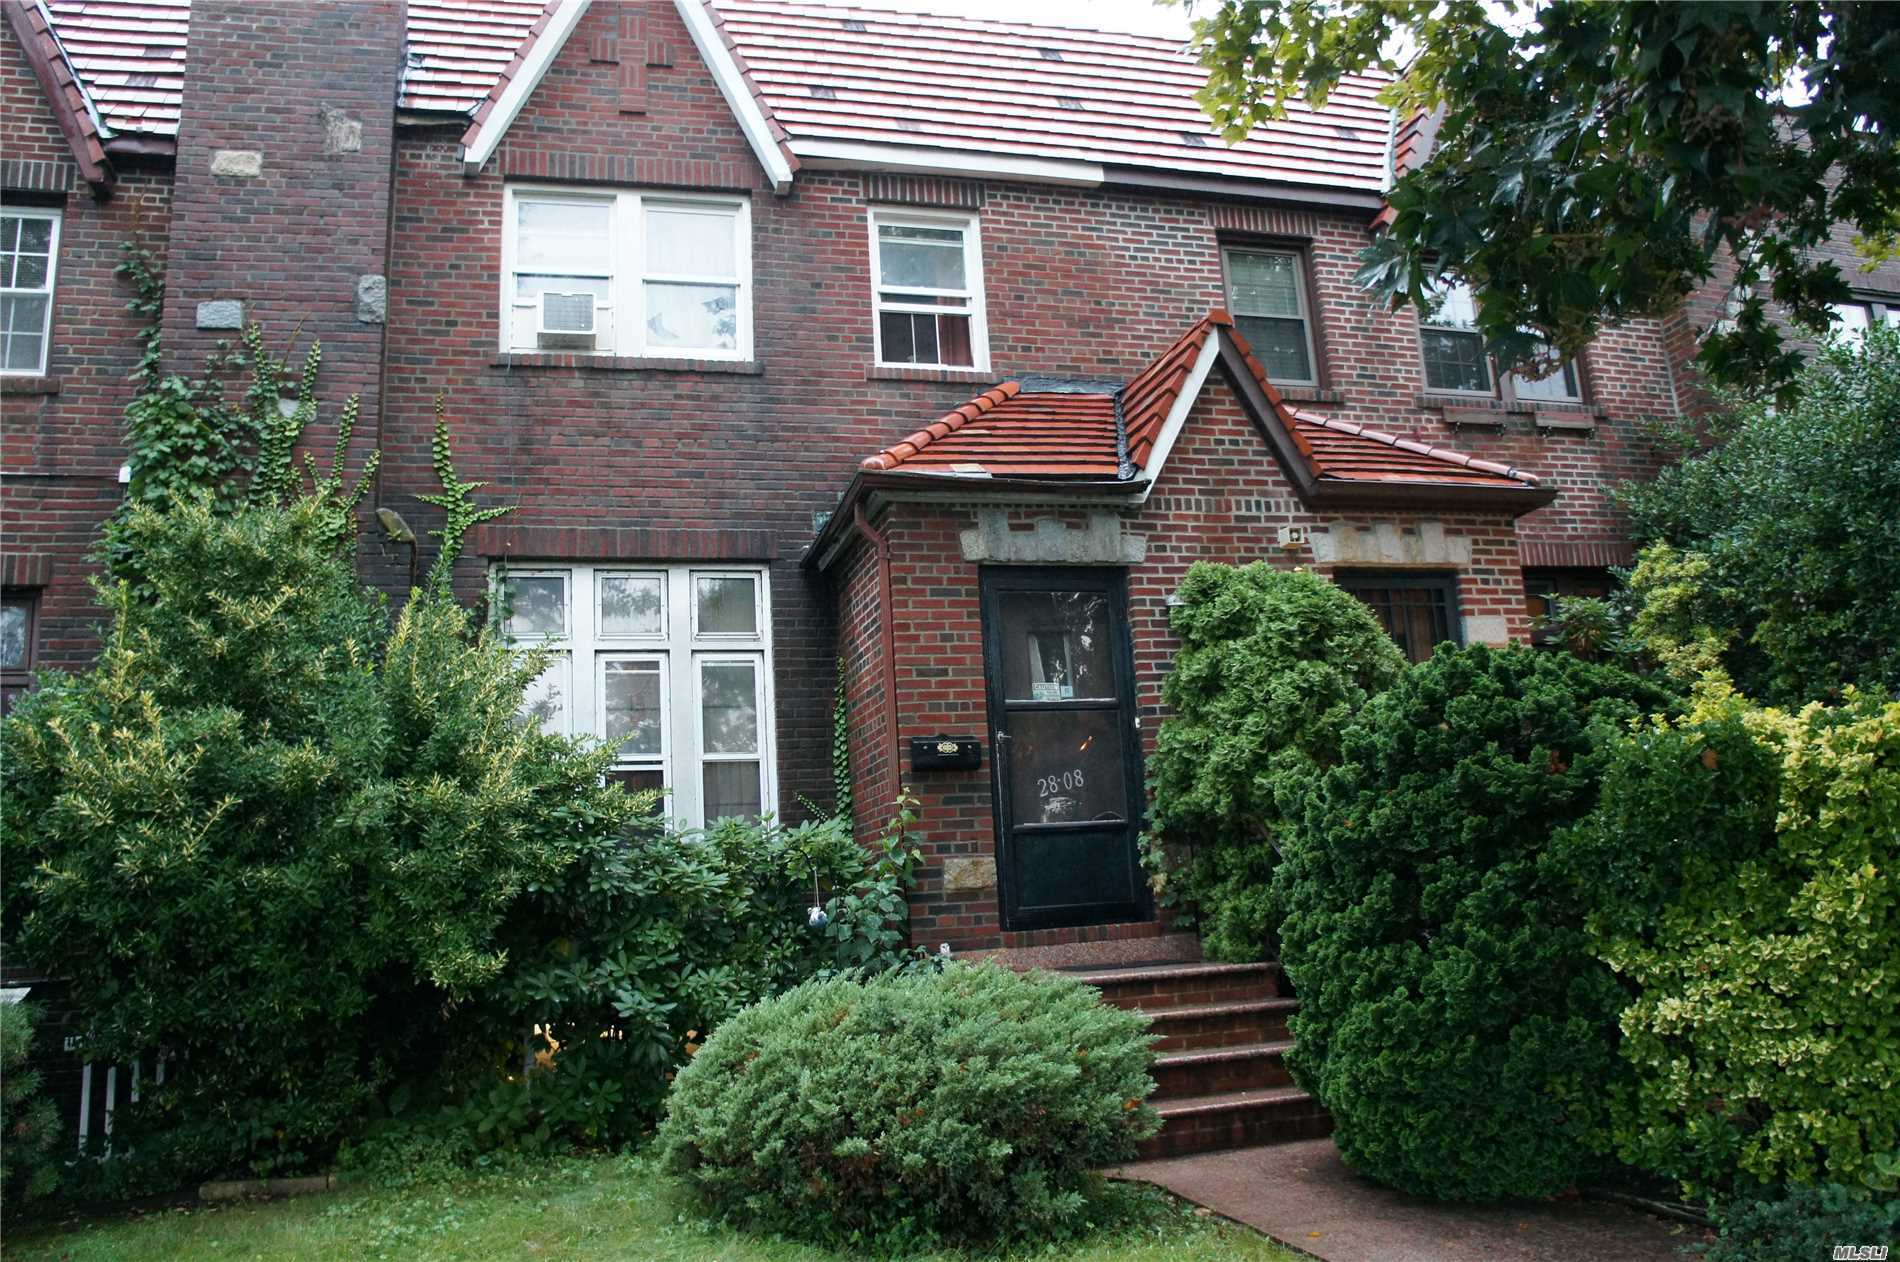 Single Family Tudor Located In The Heart Of Flushing, Close To Transportation. House Has Tons Of Potential! Needs Tlc And Is Being Sold As-Is *Sellers Are In The Process Of Clearing Clutter Out Of The Home, Pictures Will Be Updated Along The Way* Sellers Want To Hear All Offers!